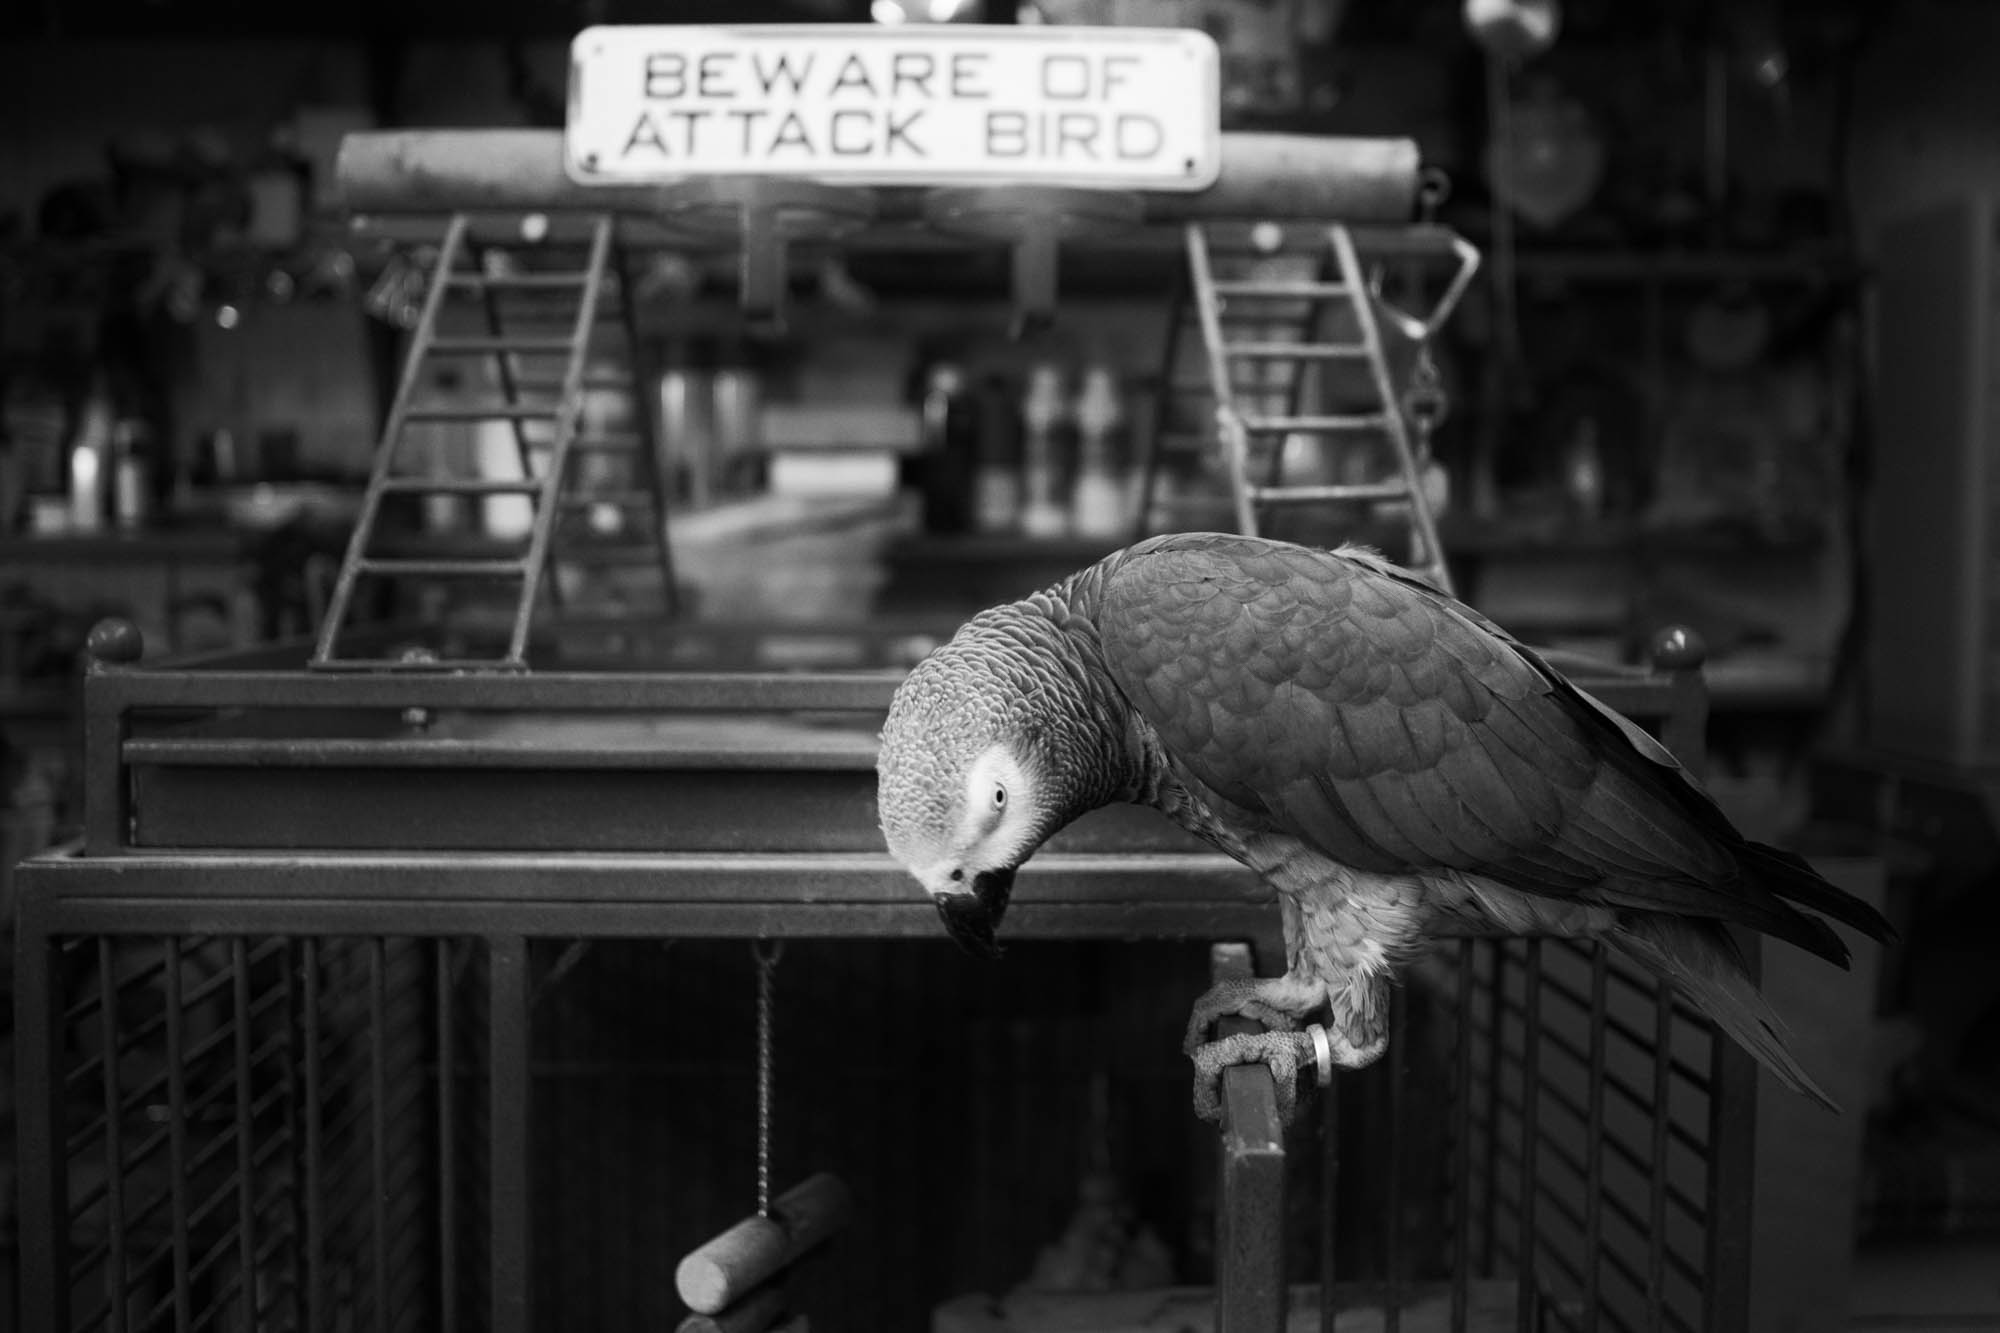 Darling the African Gray Parrot